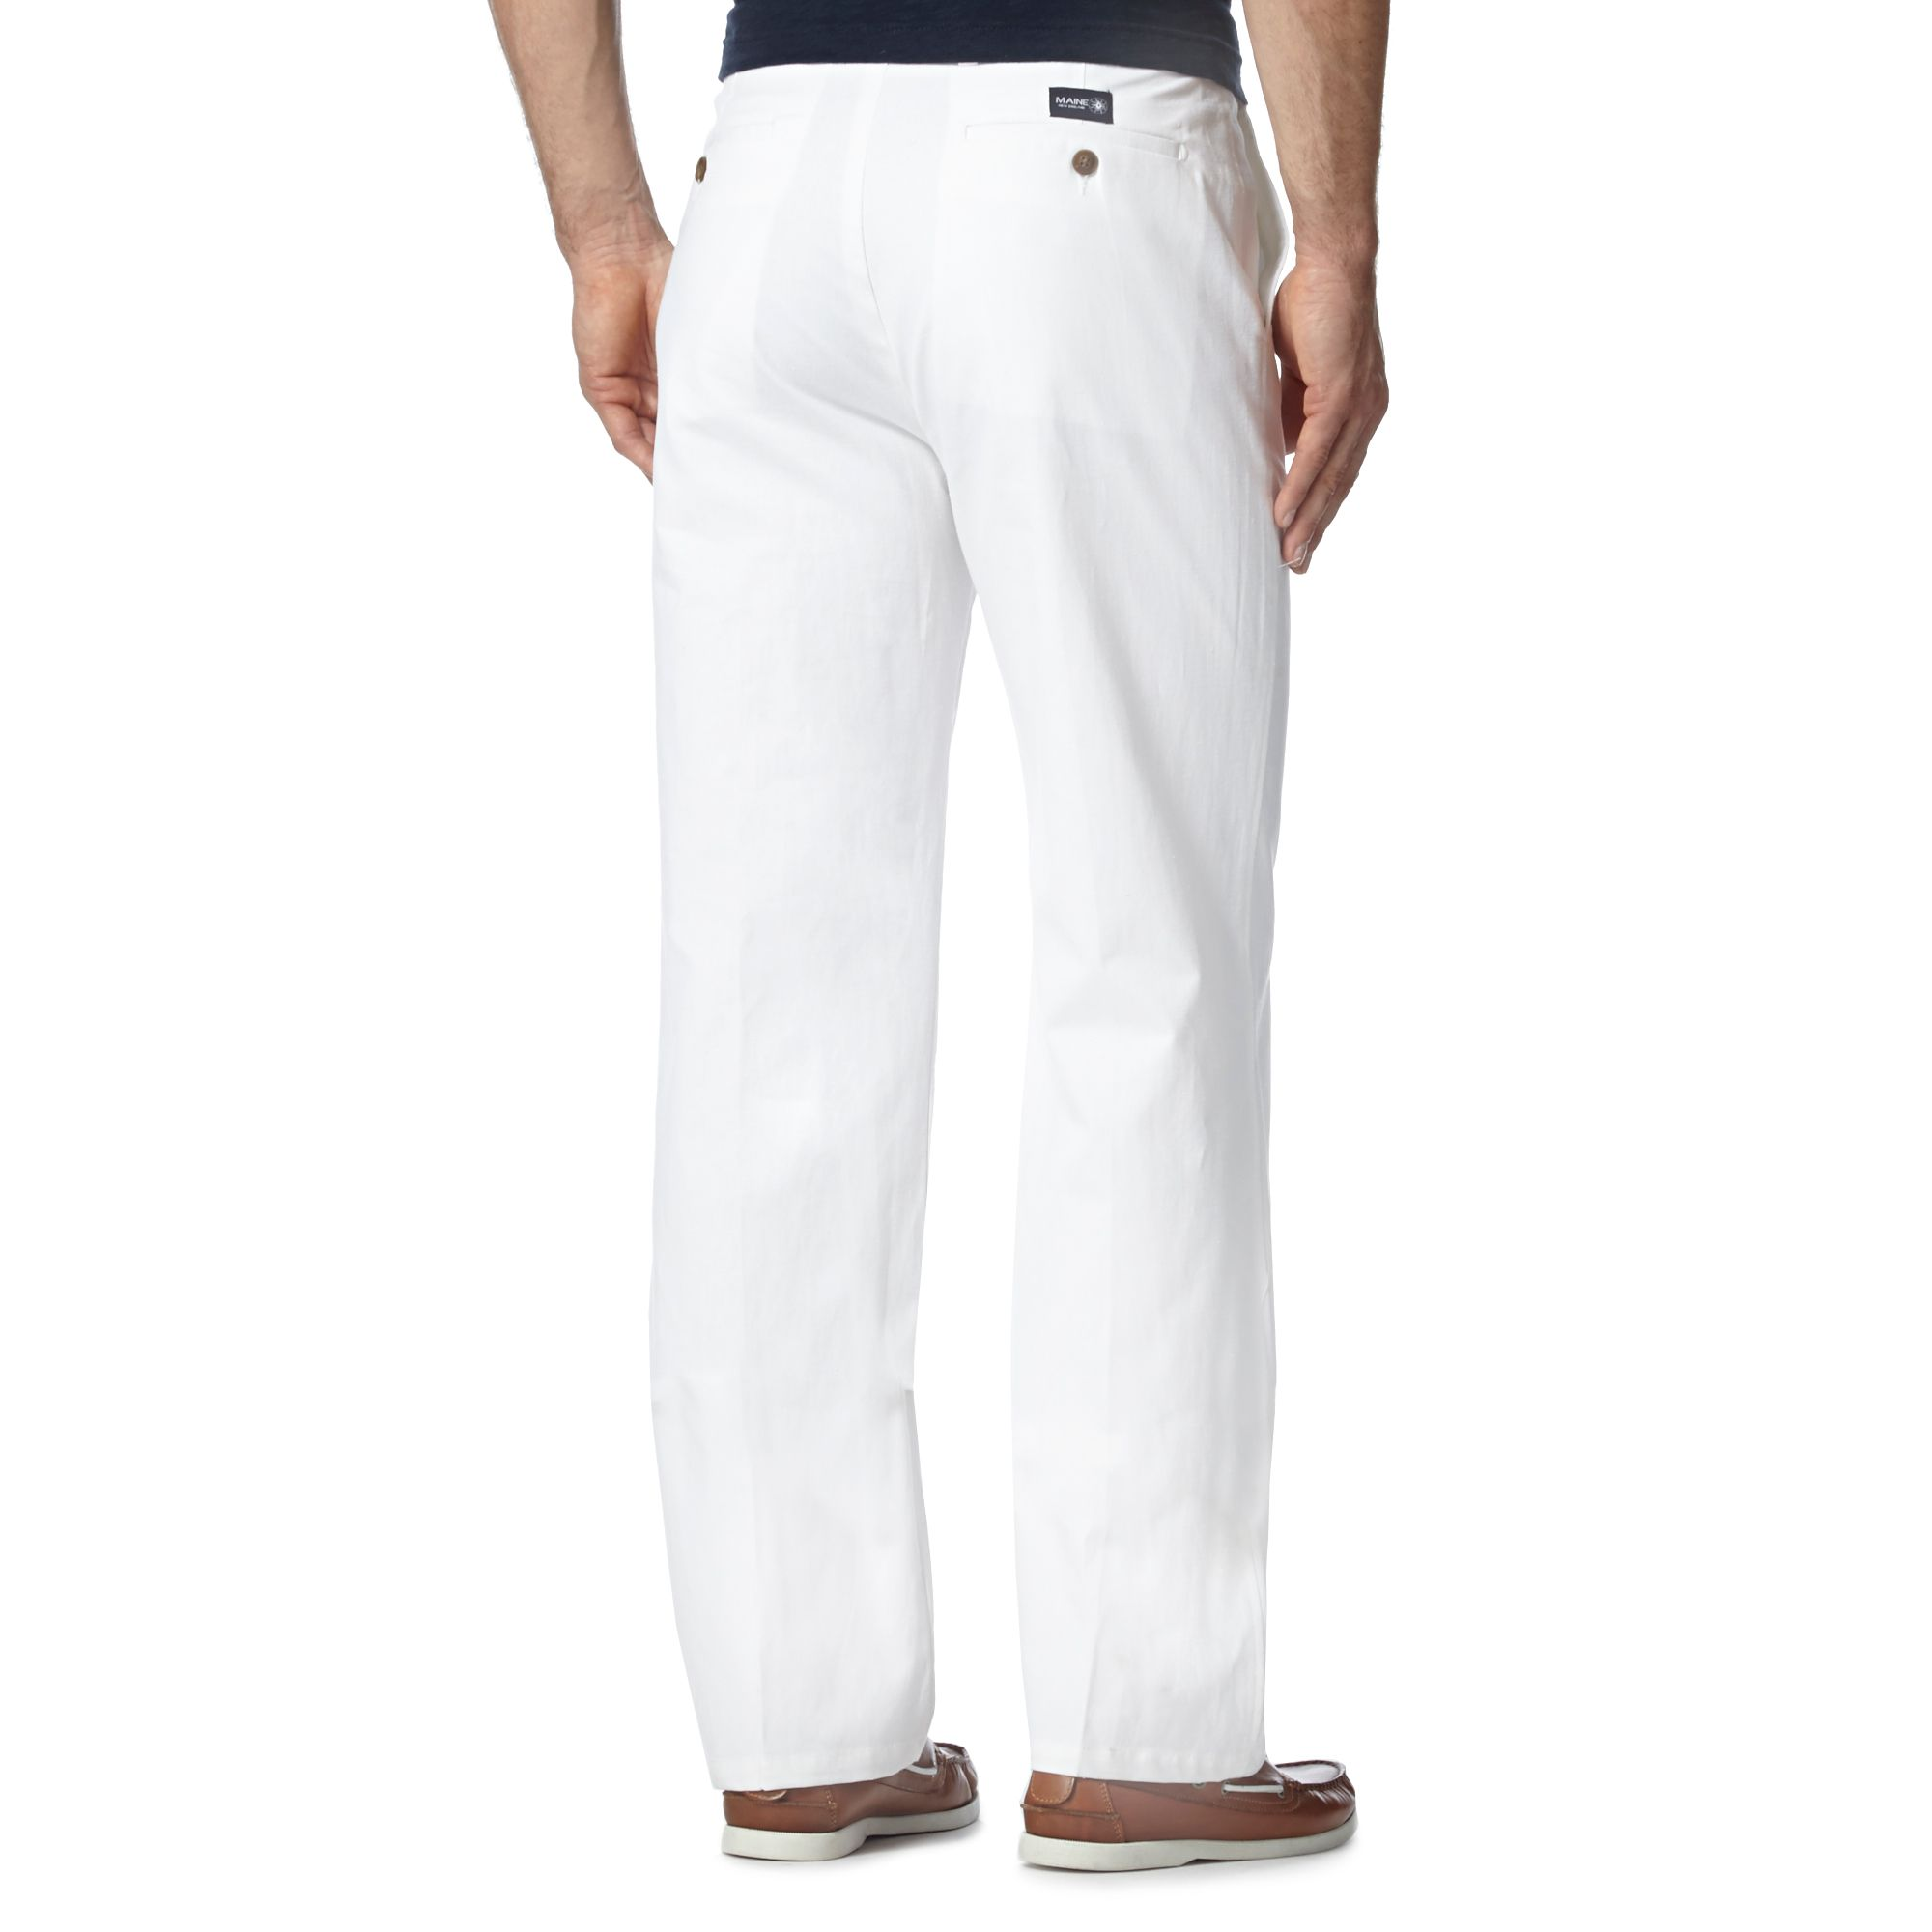 Find mens white linen trousers at ShopStyle. Shop the latest collection of mens white linen trousers from the most popular stores - all in one place.